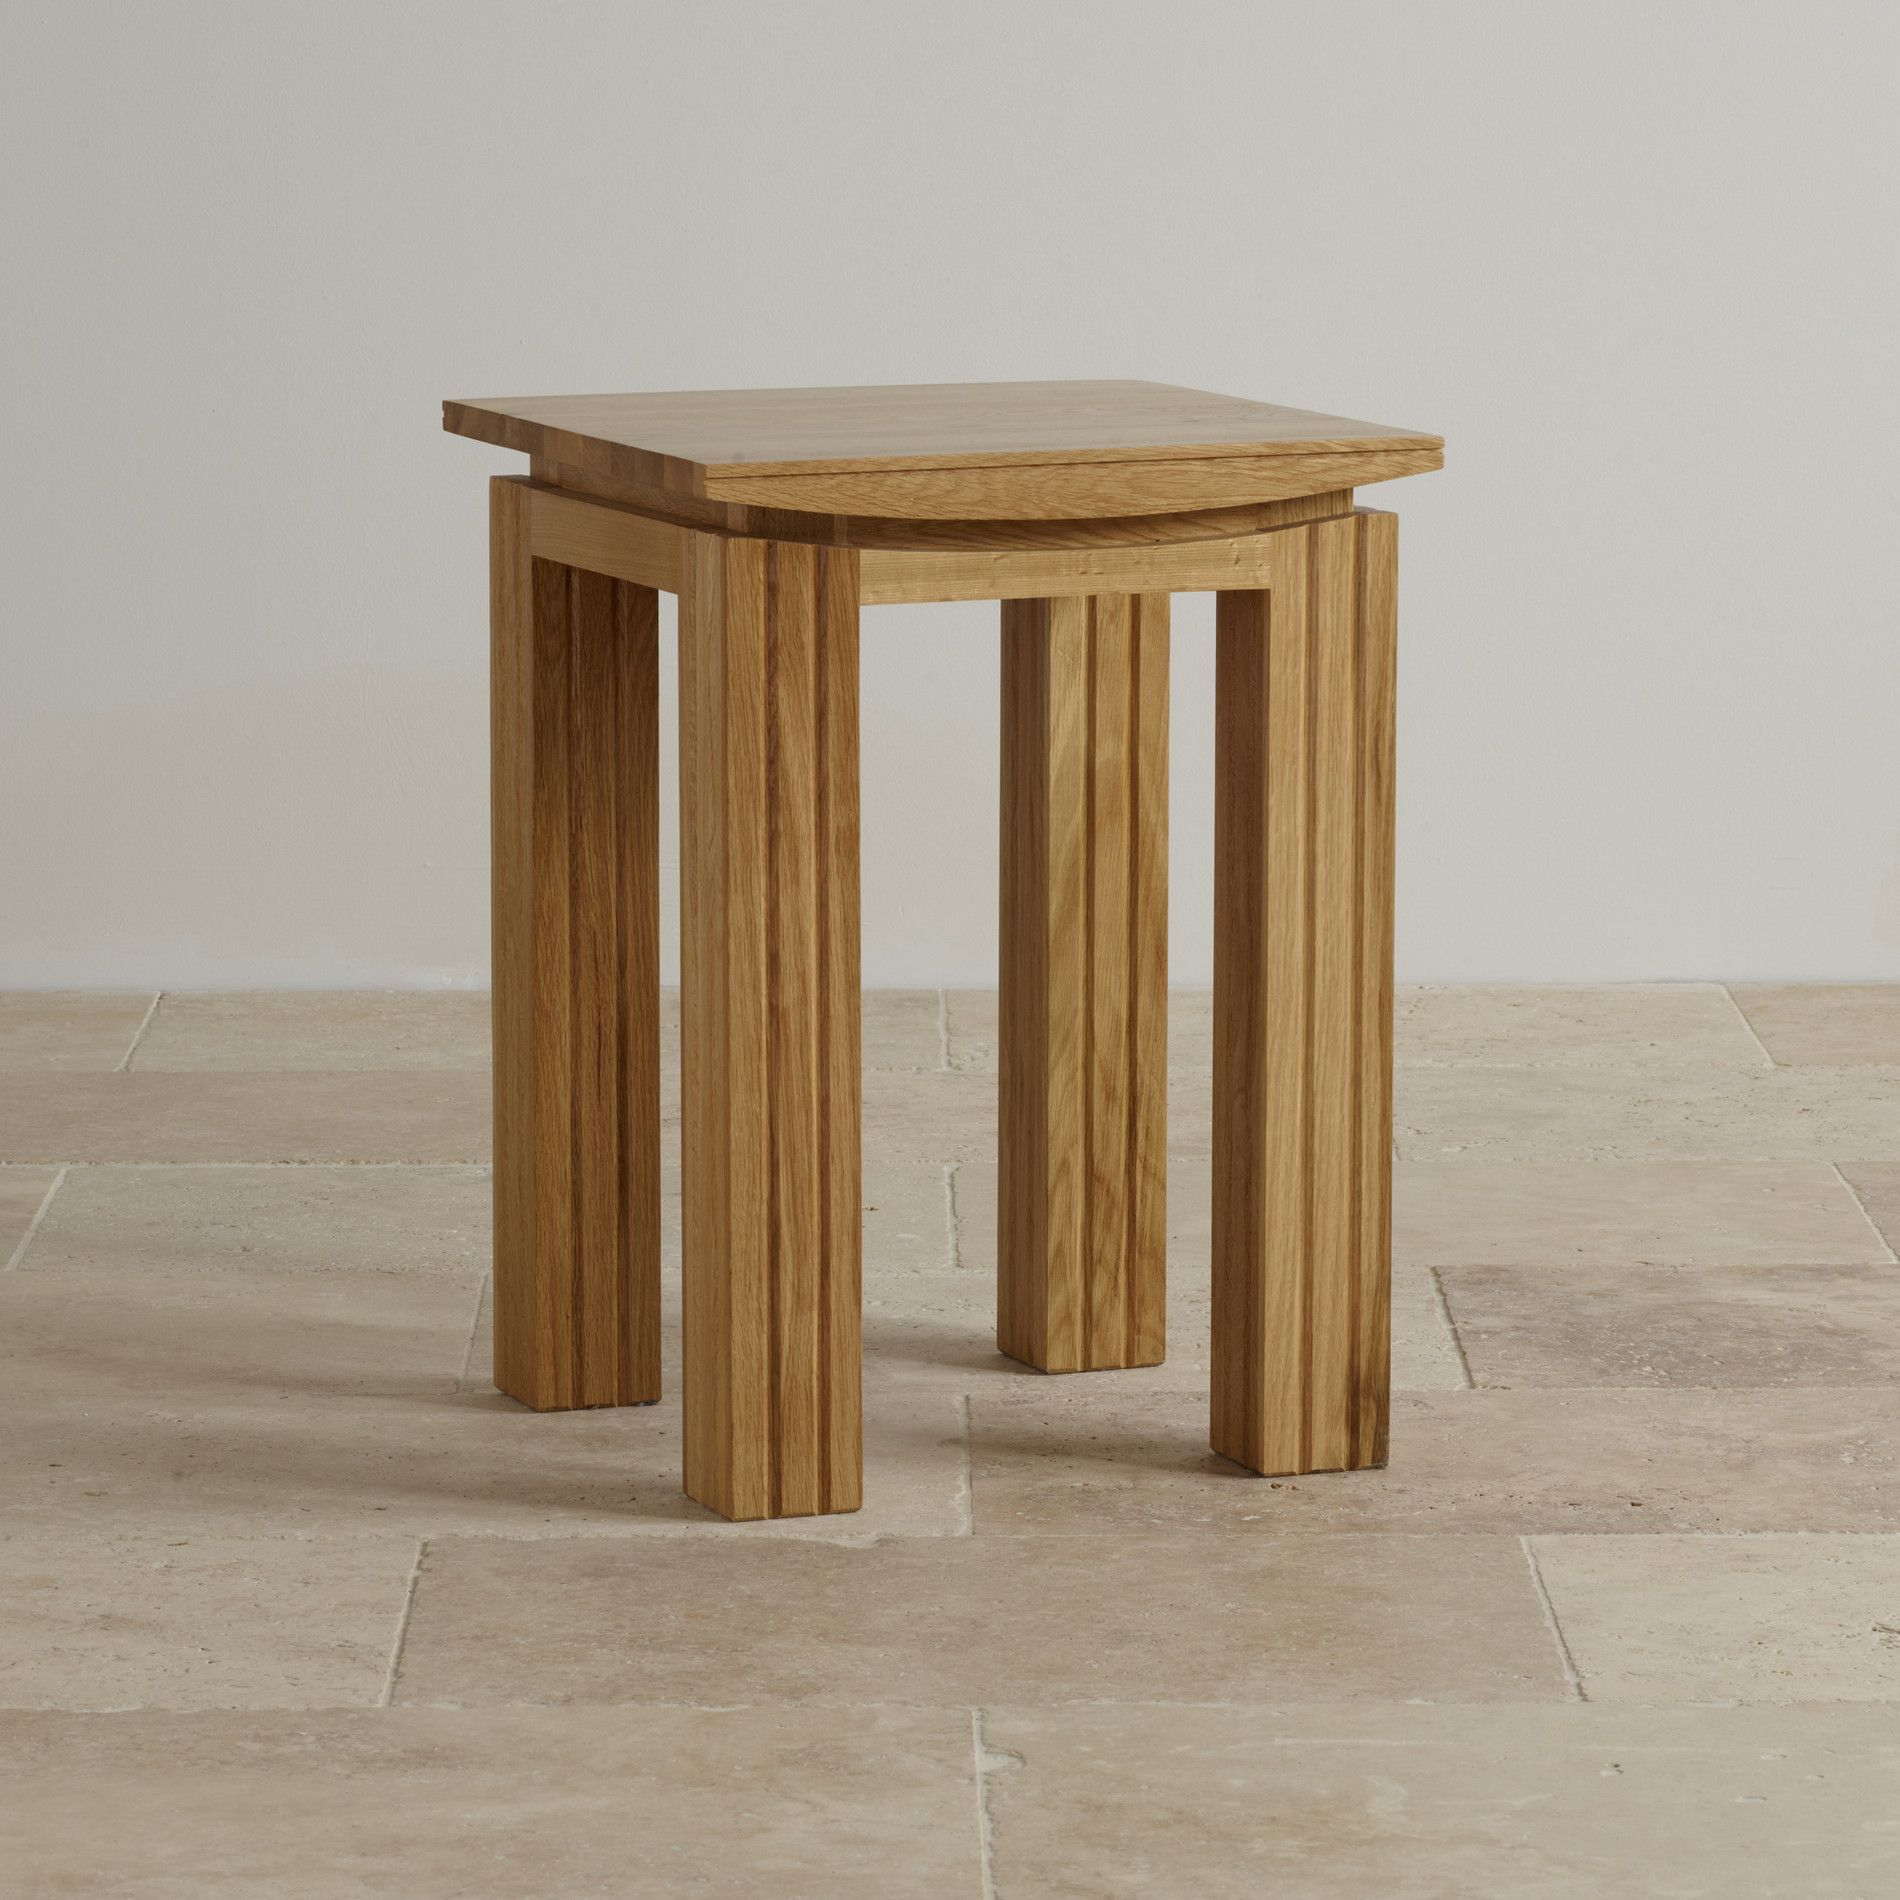 Natural Solid Oak Side Tables Side Table Tokyo Range Oak Furnitureland Solid Oak Oak Furniture Land Table